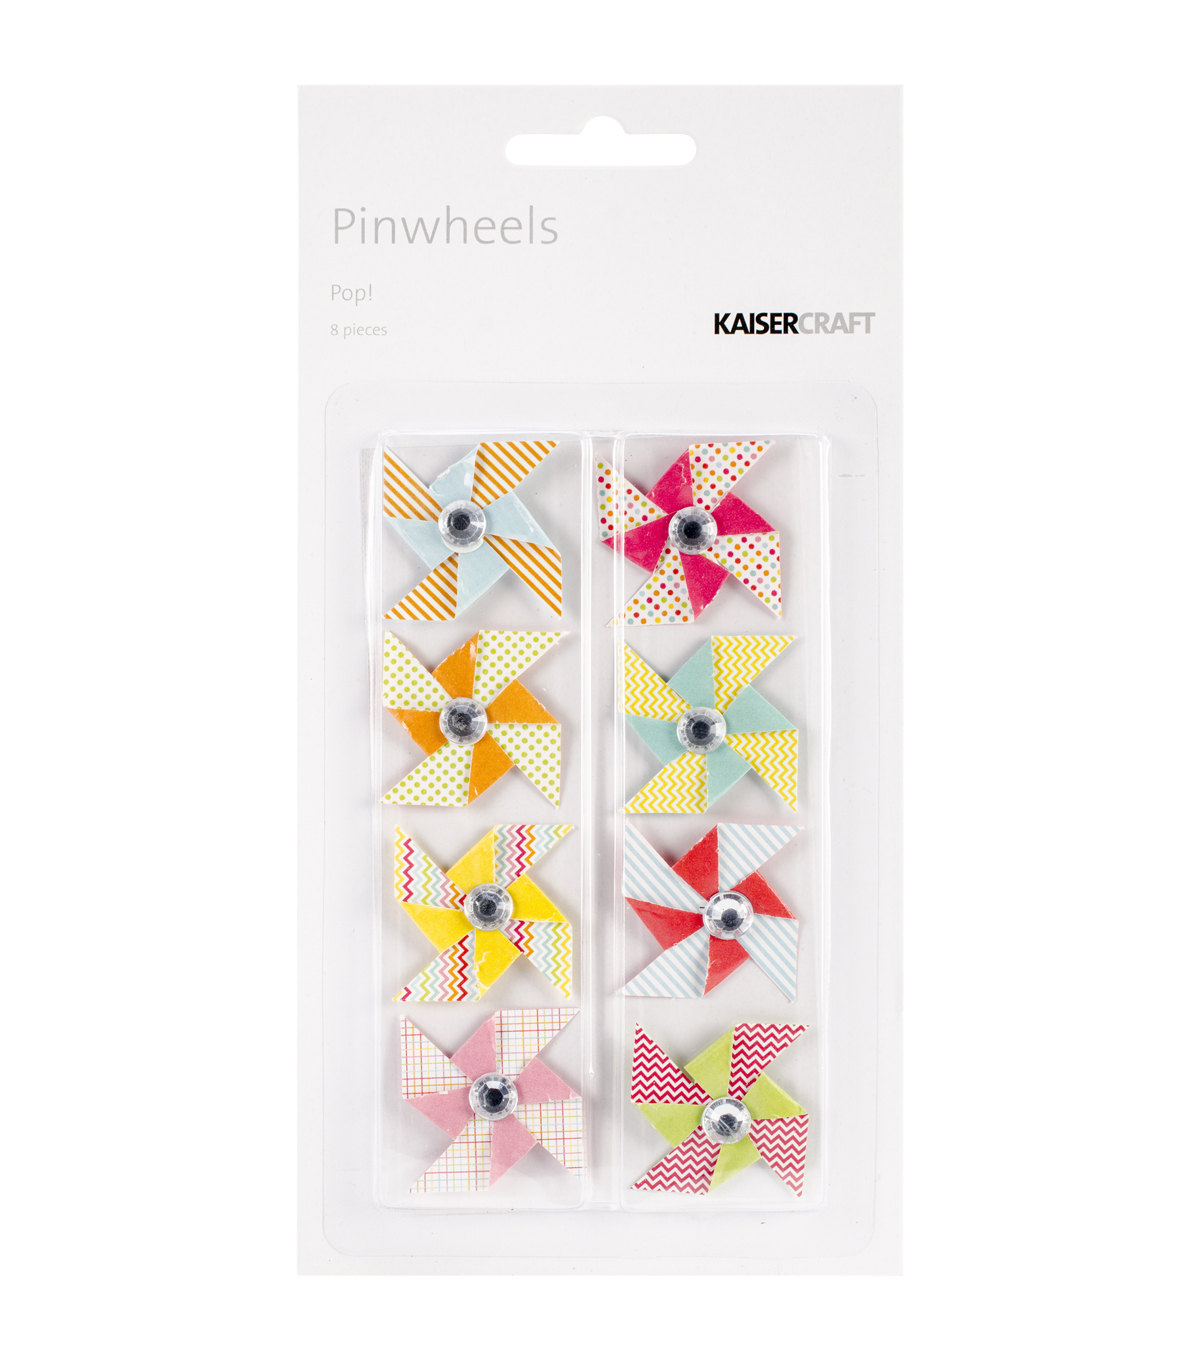 Kaisercraft-Pop! Mini Pinwheels 8/Pkg